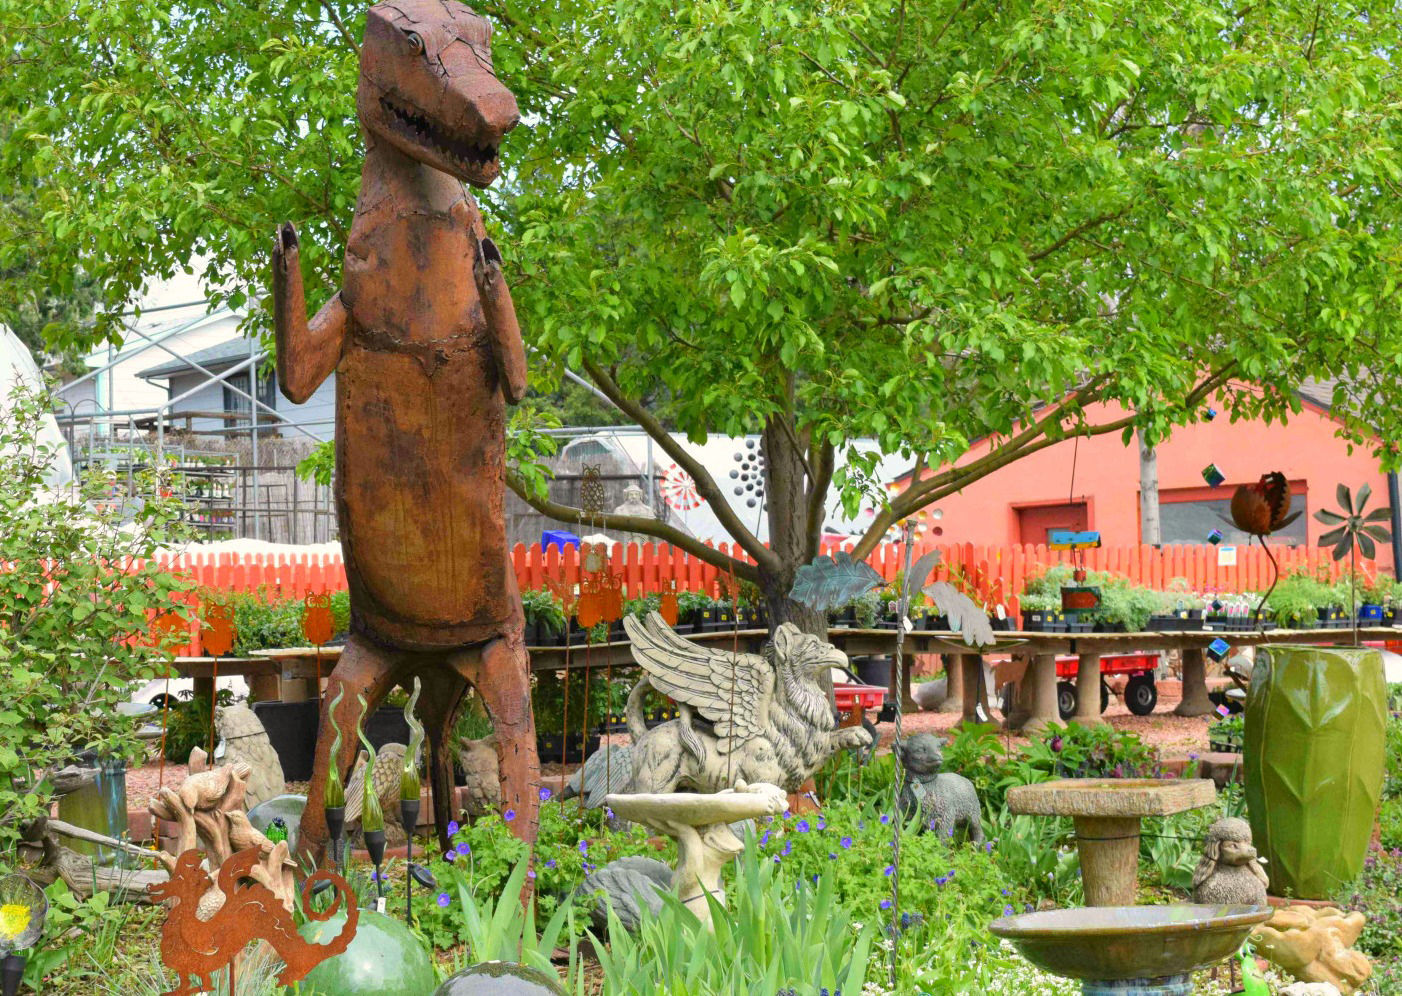 Traditional To Eccentric, Good Earth Garden Center Fits The Bill